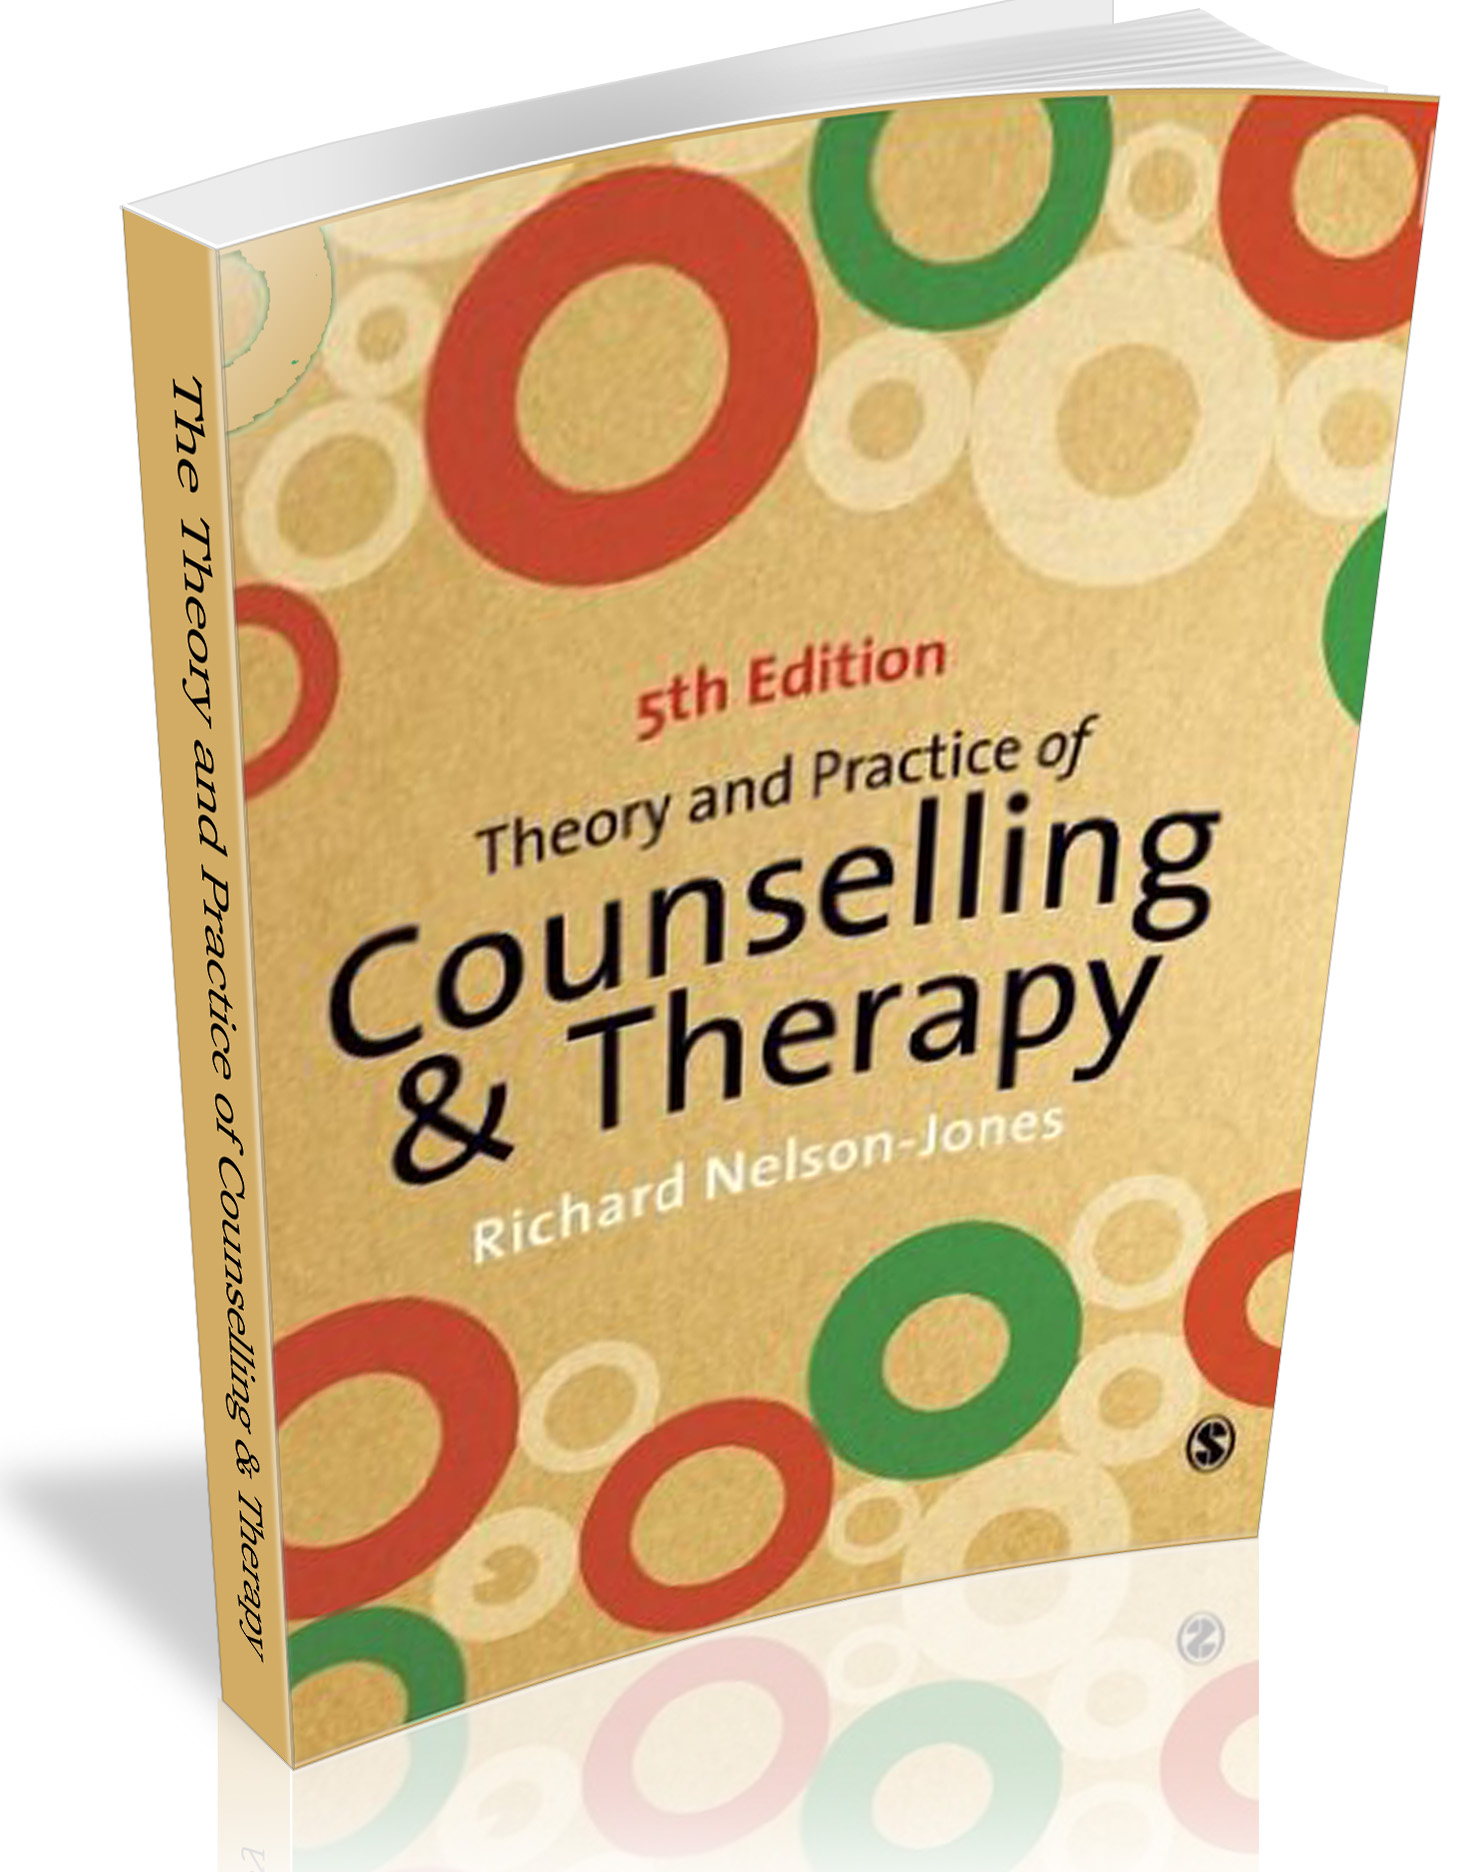 theory and practice of counselling and therapy nelson jones pdf